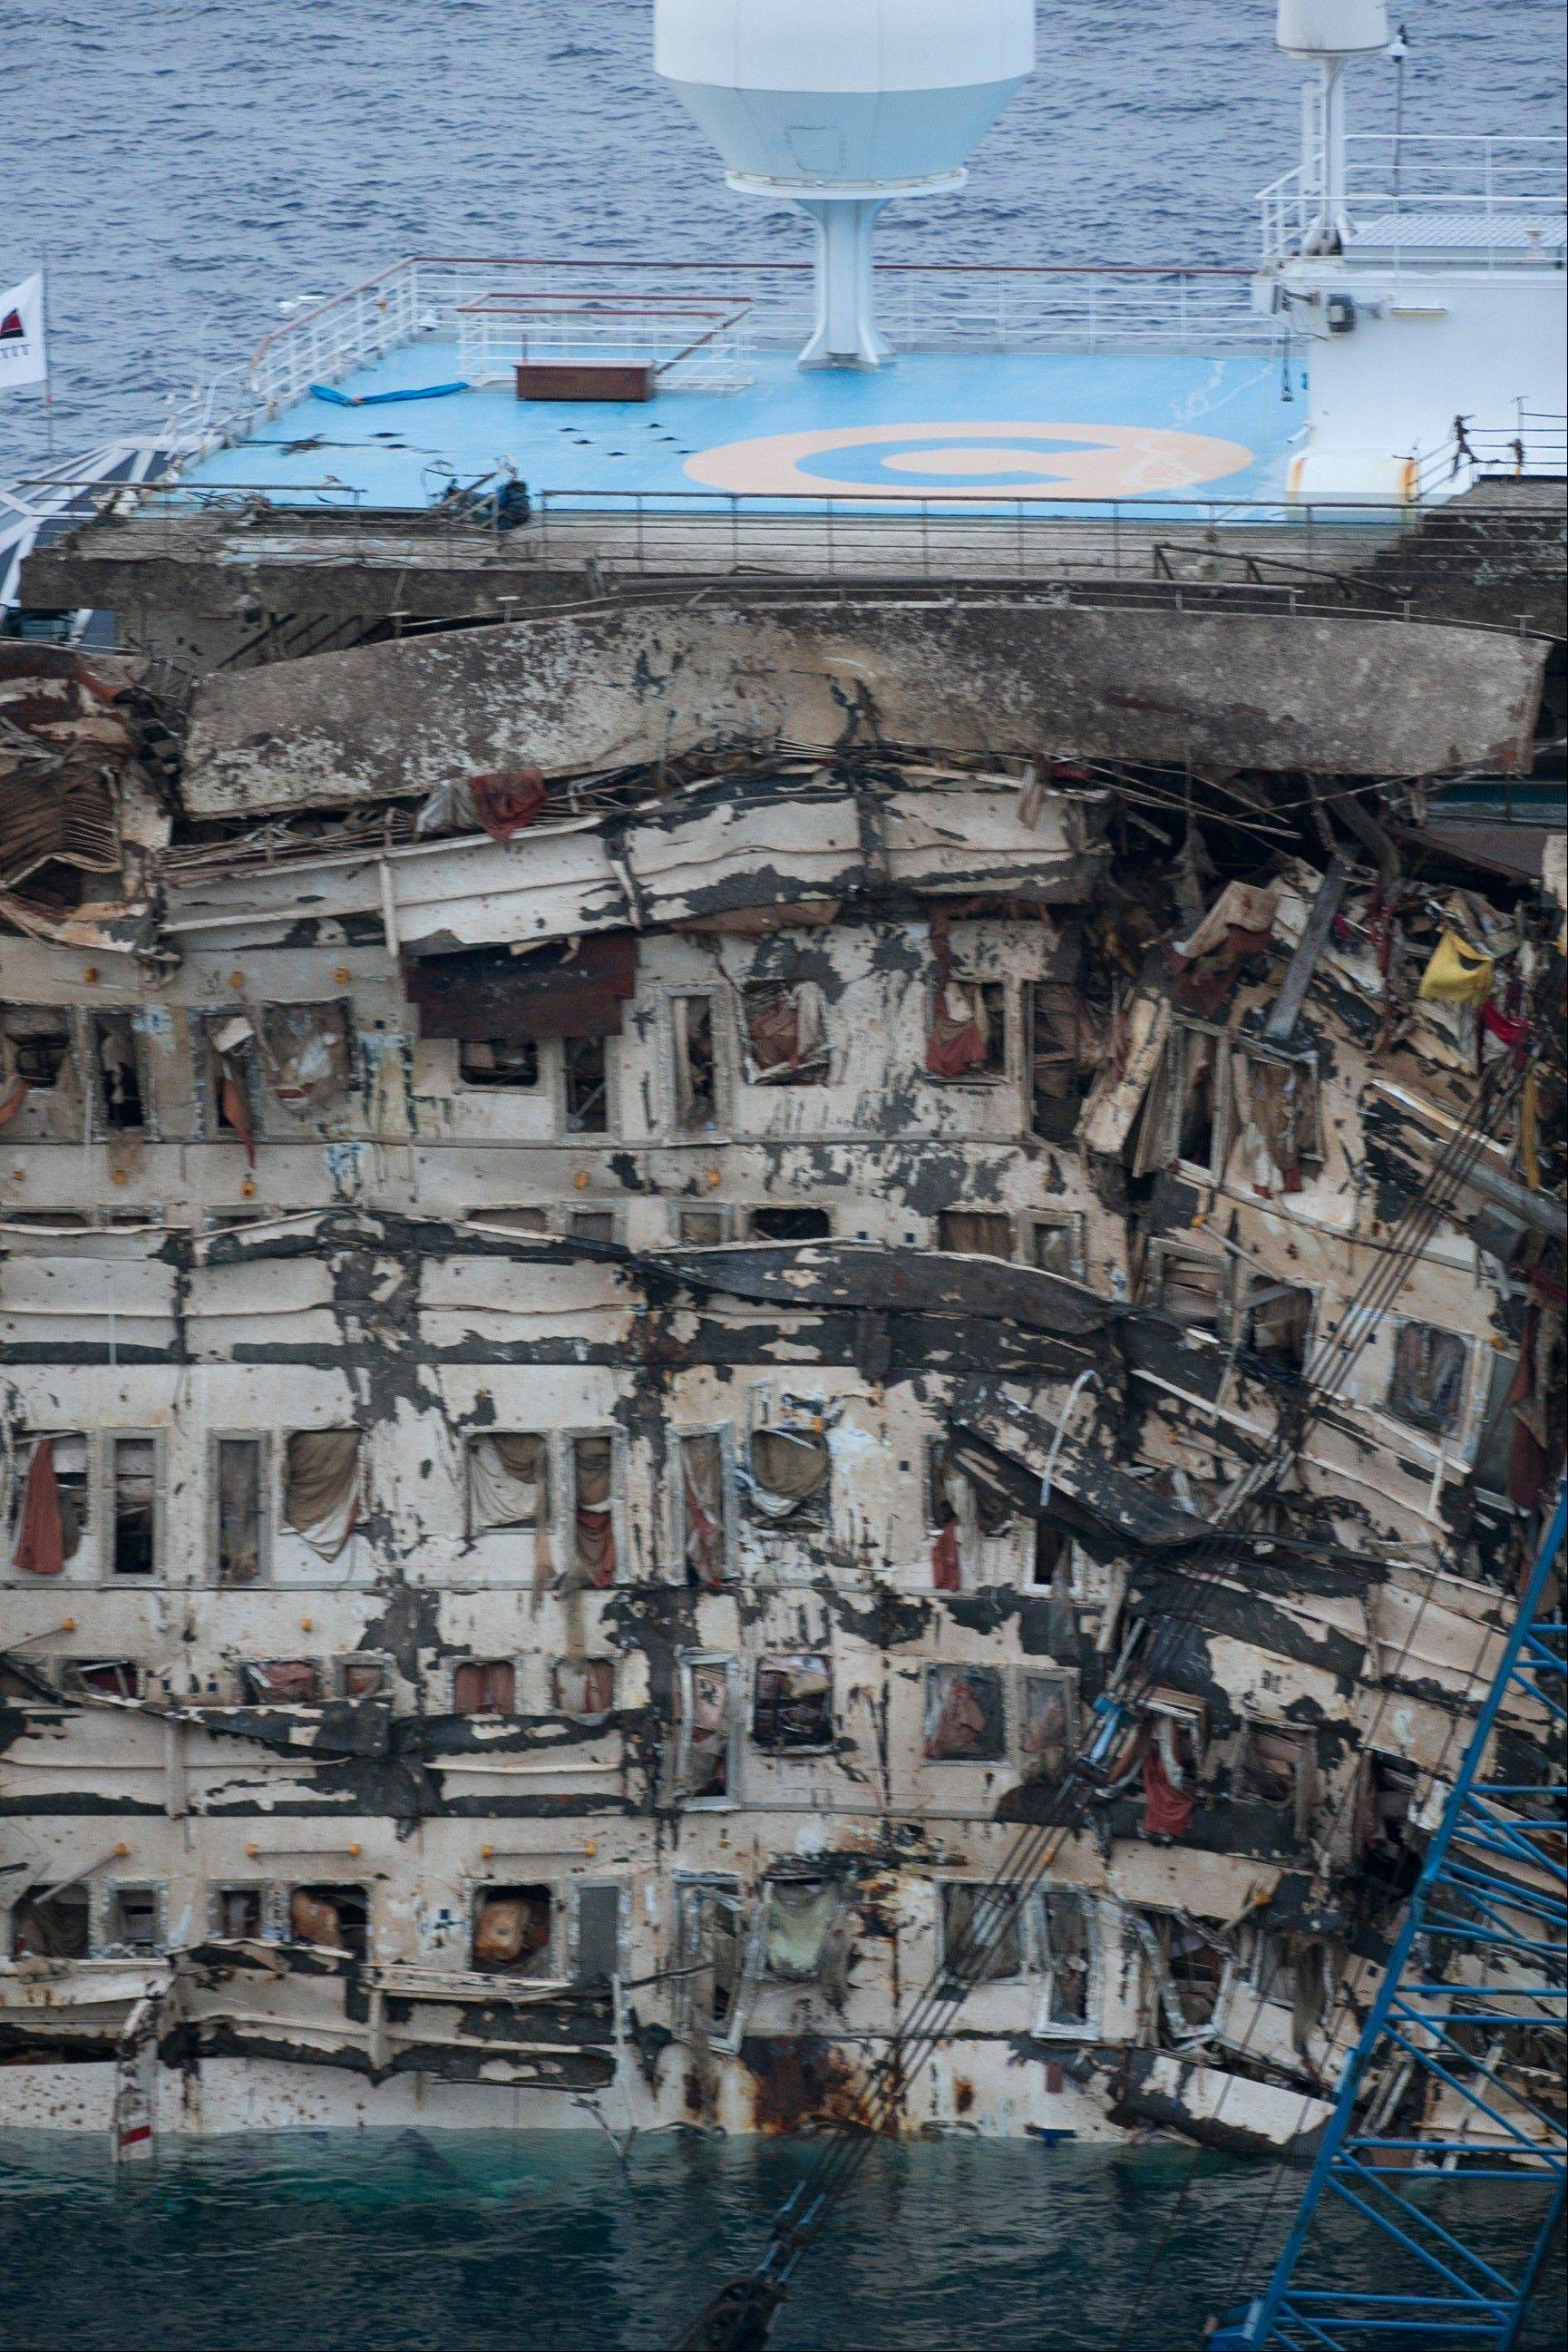 A detail of the right side of the Costa Concordia is seen after it was lifted upright on the Tuscan Island of Giglio, Italy, early Tuesday morning, Sept. 17, 2013.